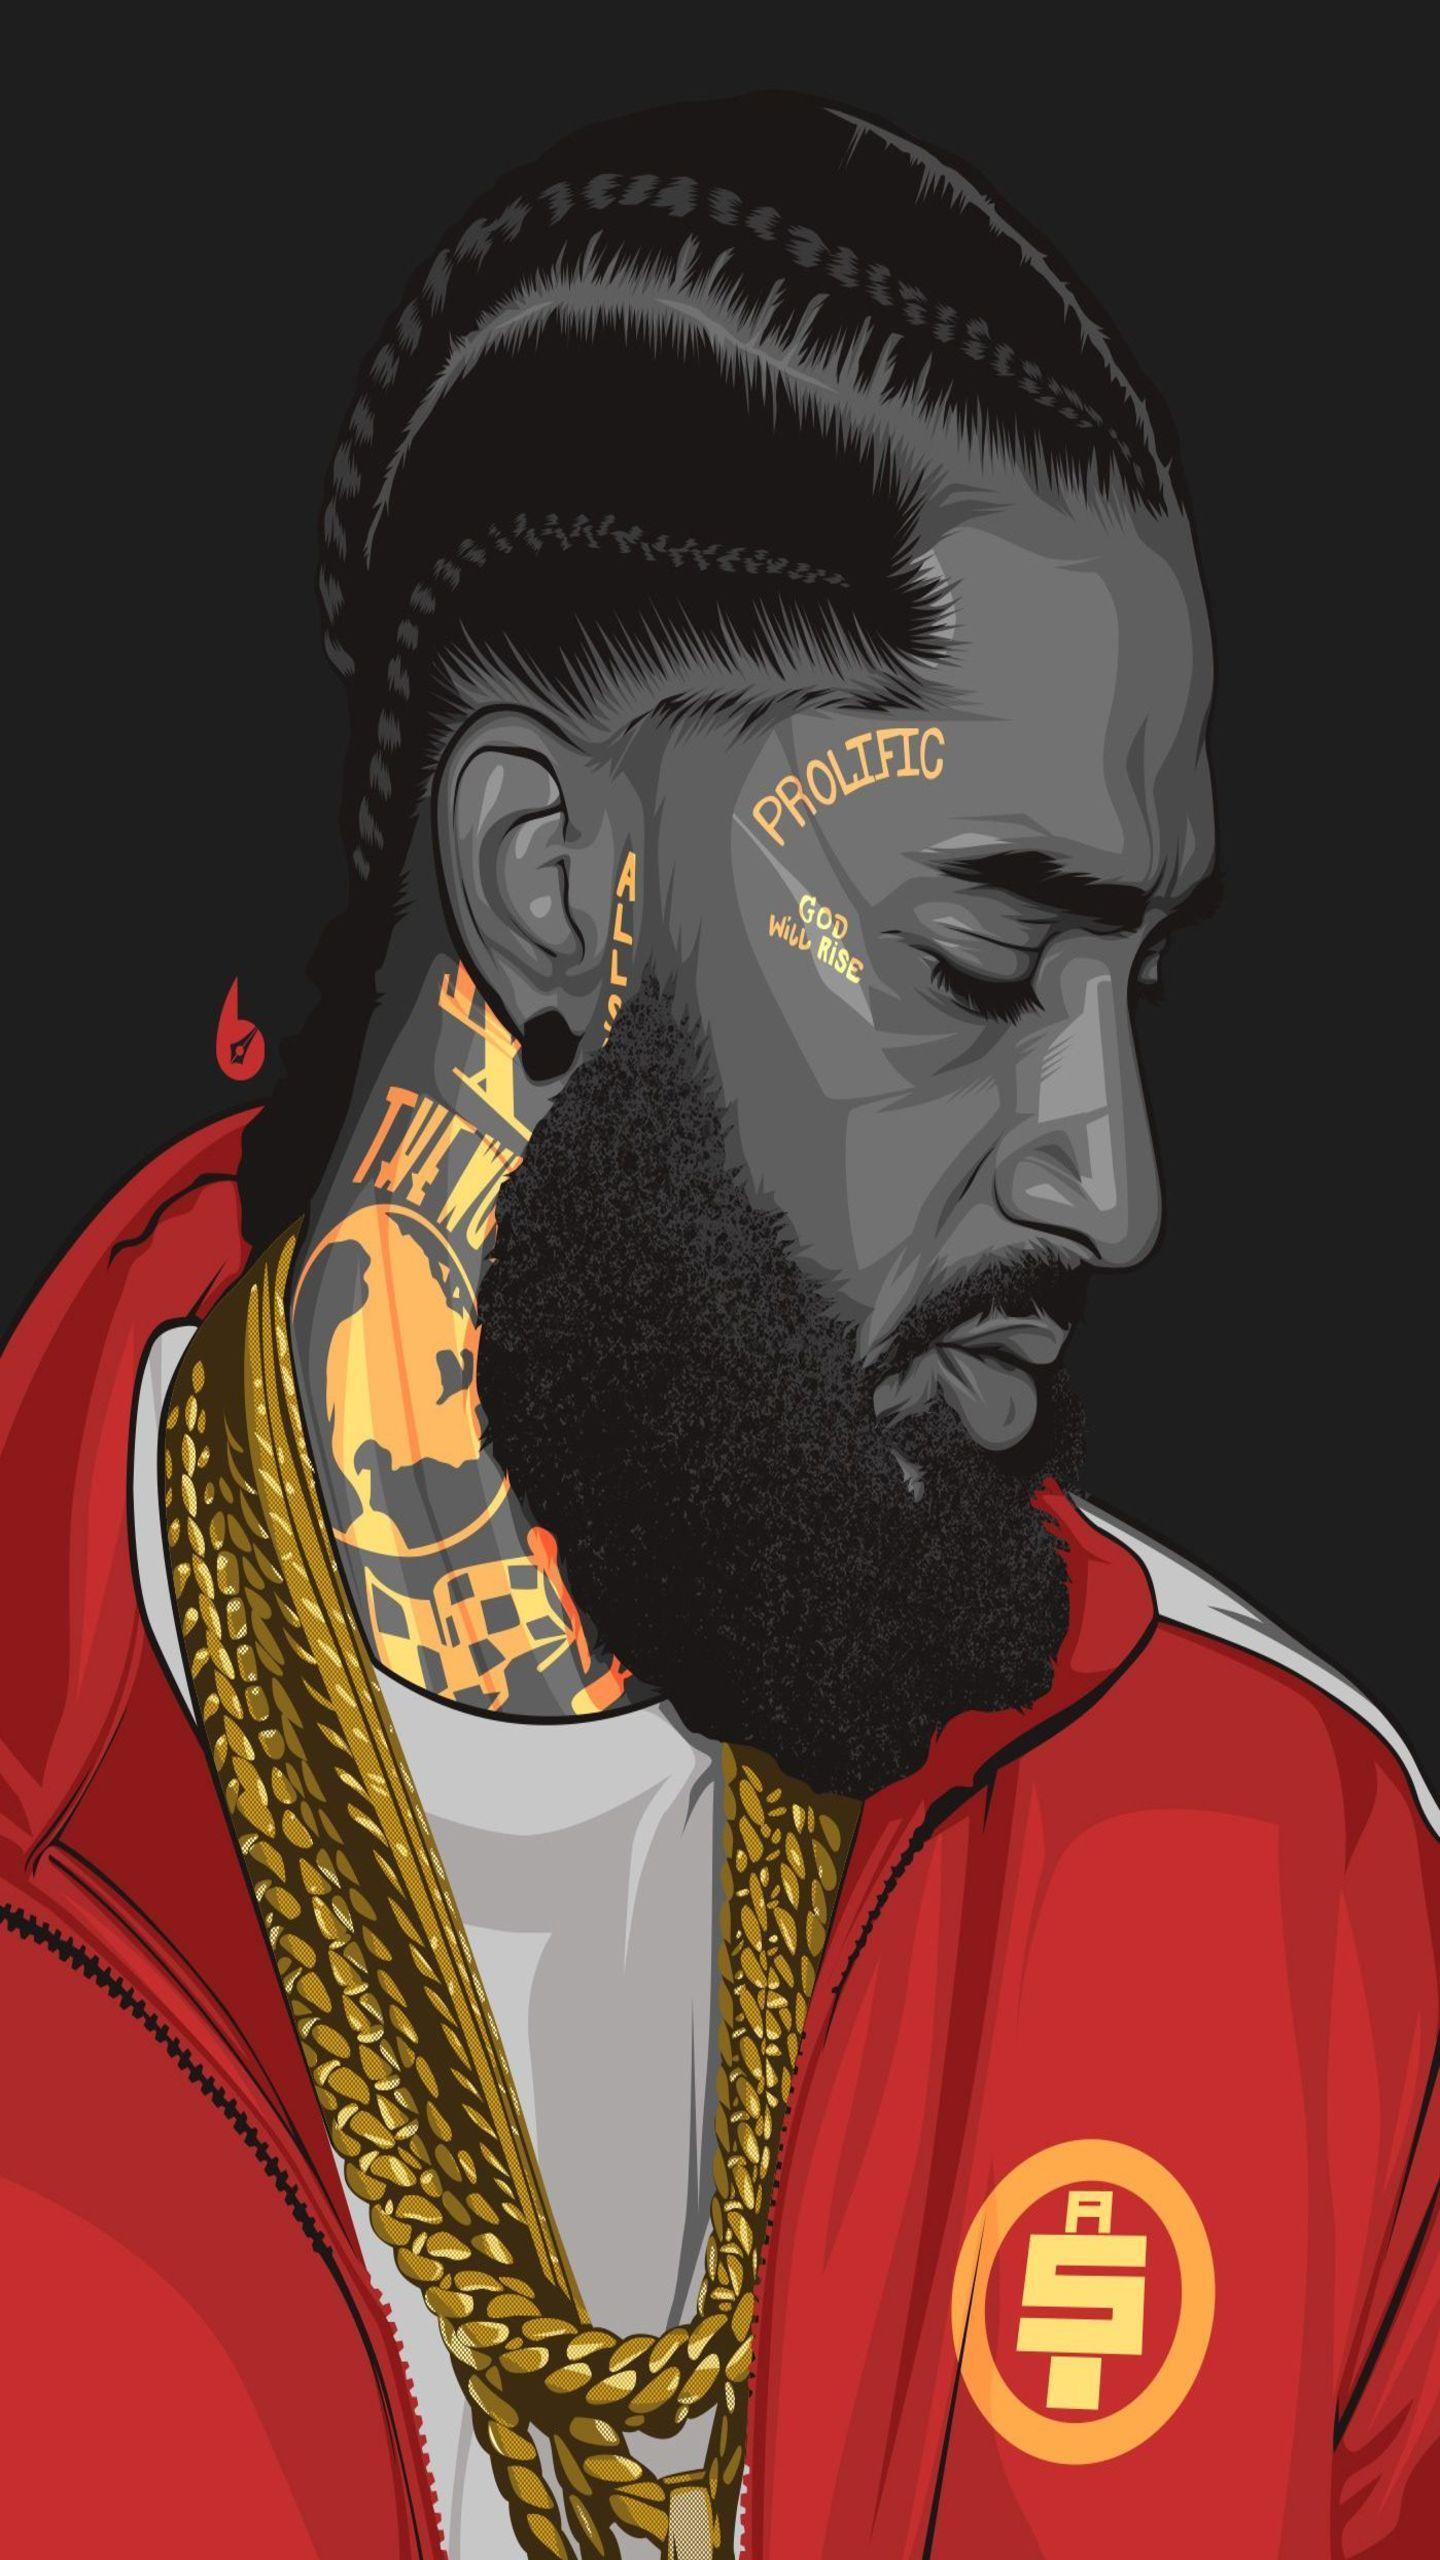 Ghetto Wallpaper 2021 HD 4K for Android   APK Download 1440x2560